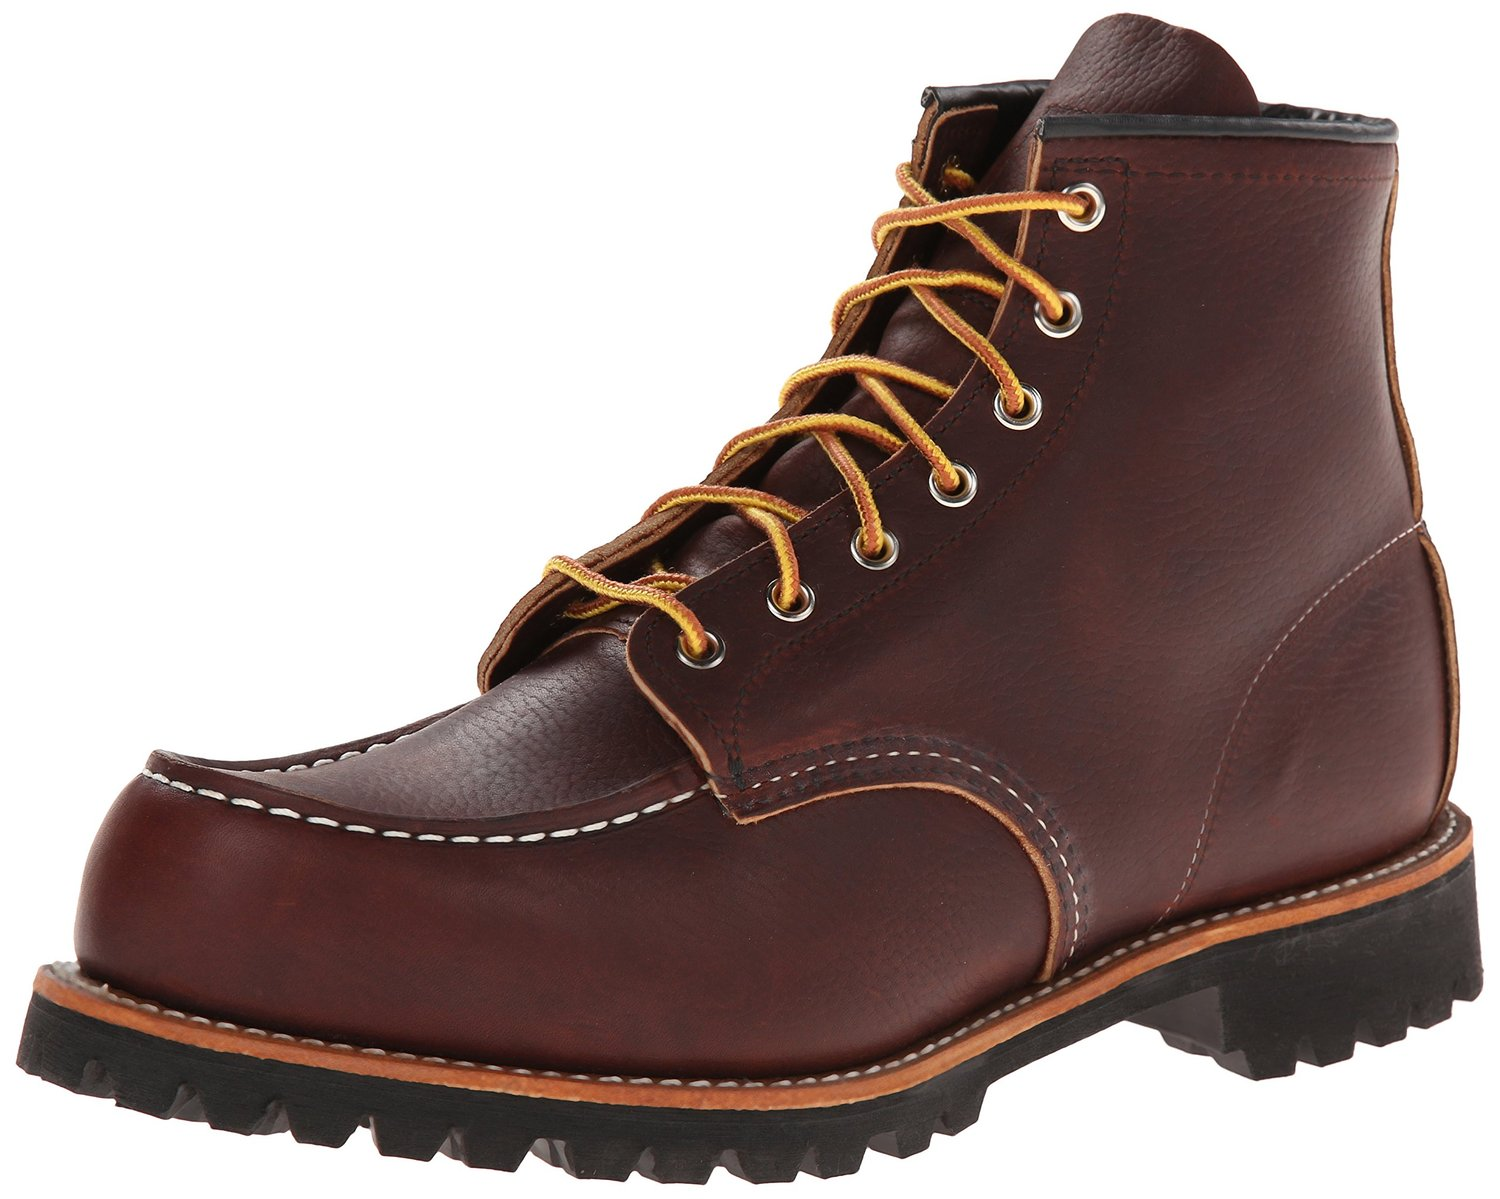 Red Wing Boots Prices tlS4WG6Y